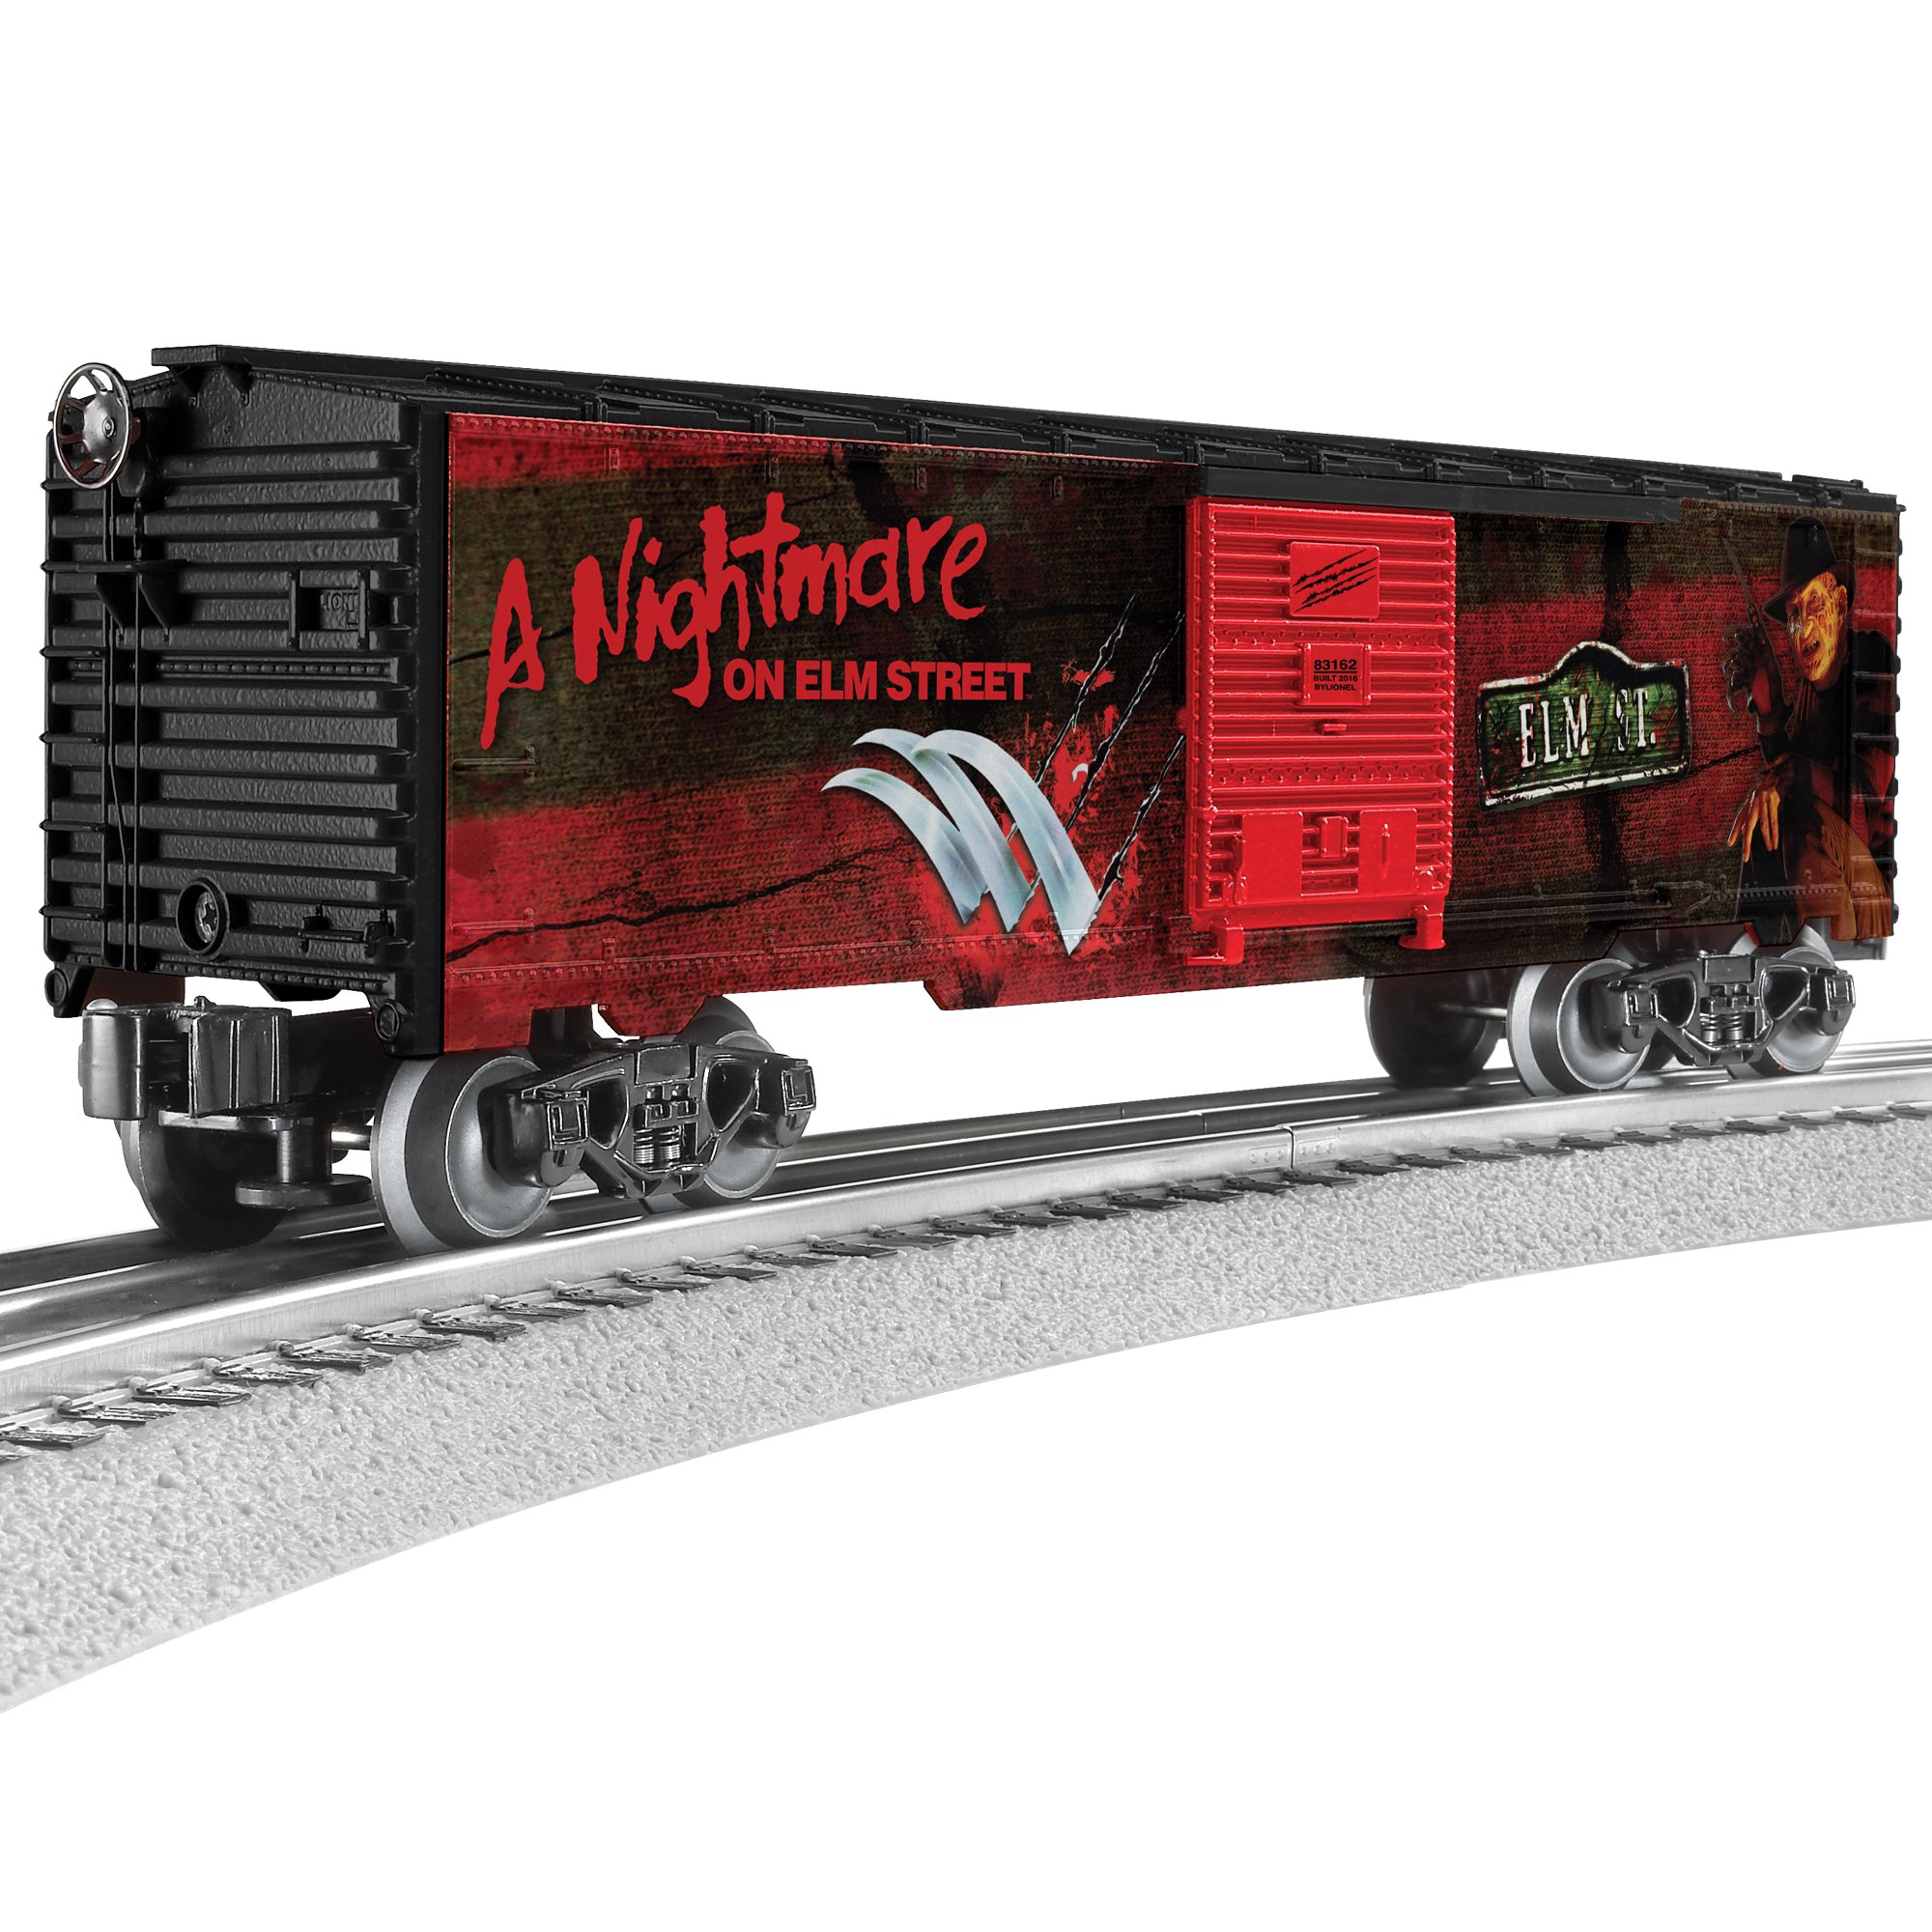 Lionel A Nightmare on Elm Street, Electric O